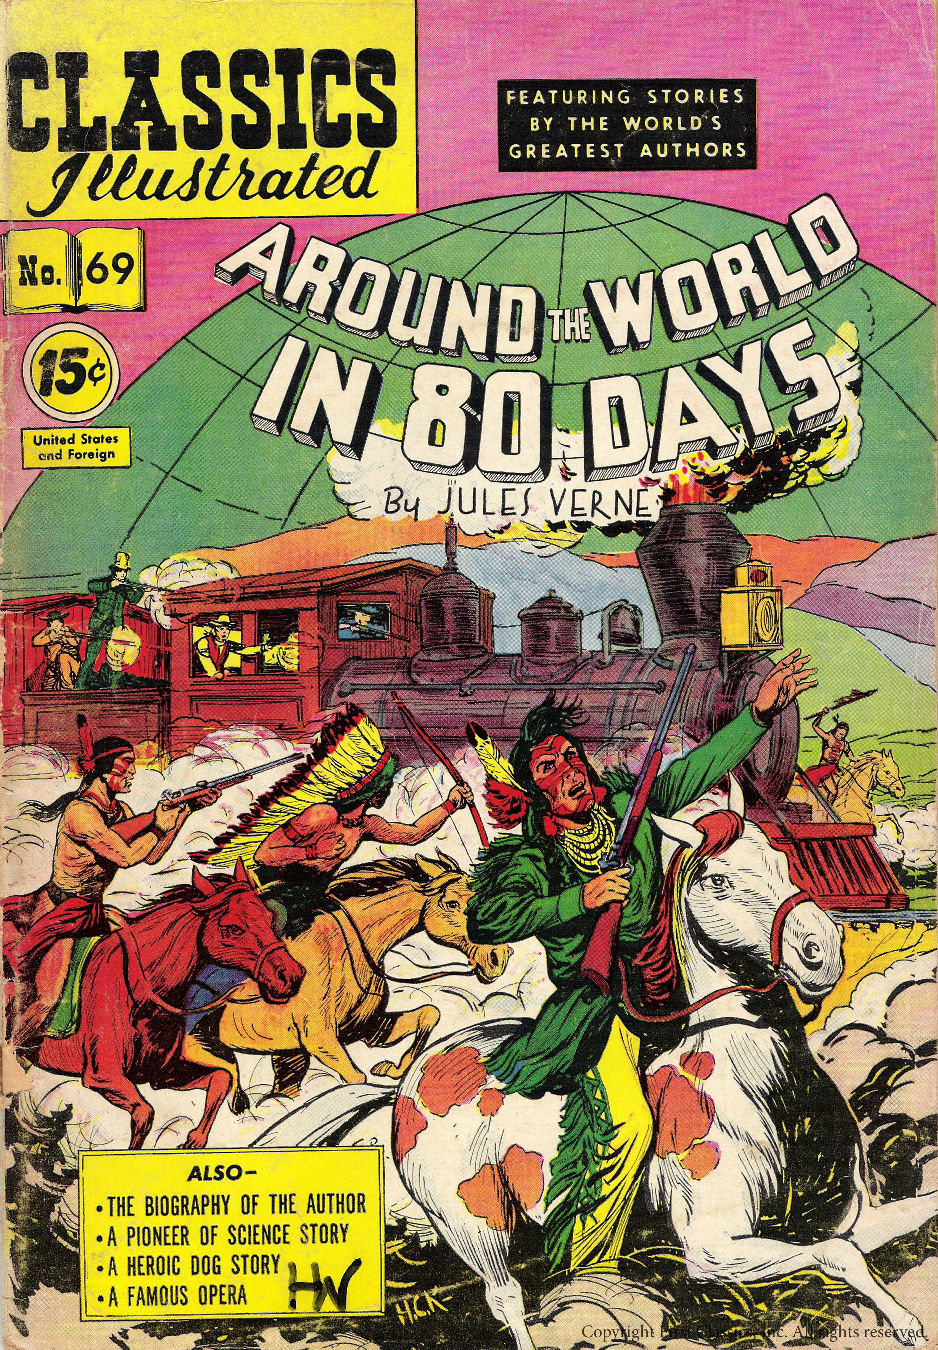 example about around the world in days essay his most popular novels included journey to the center of the earth twenty thousand leagues under the sea and around the world in eighty days